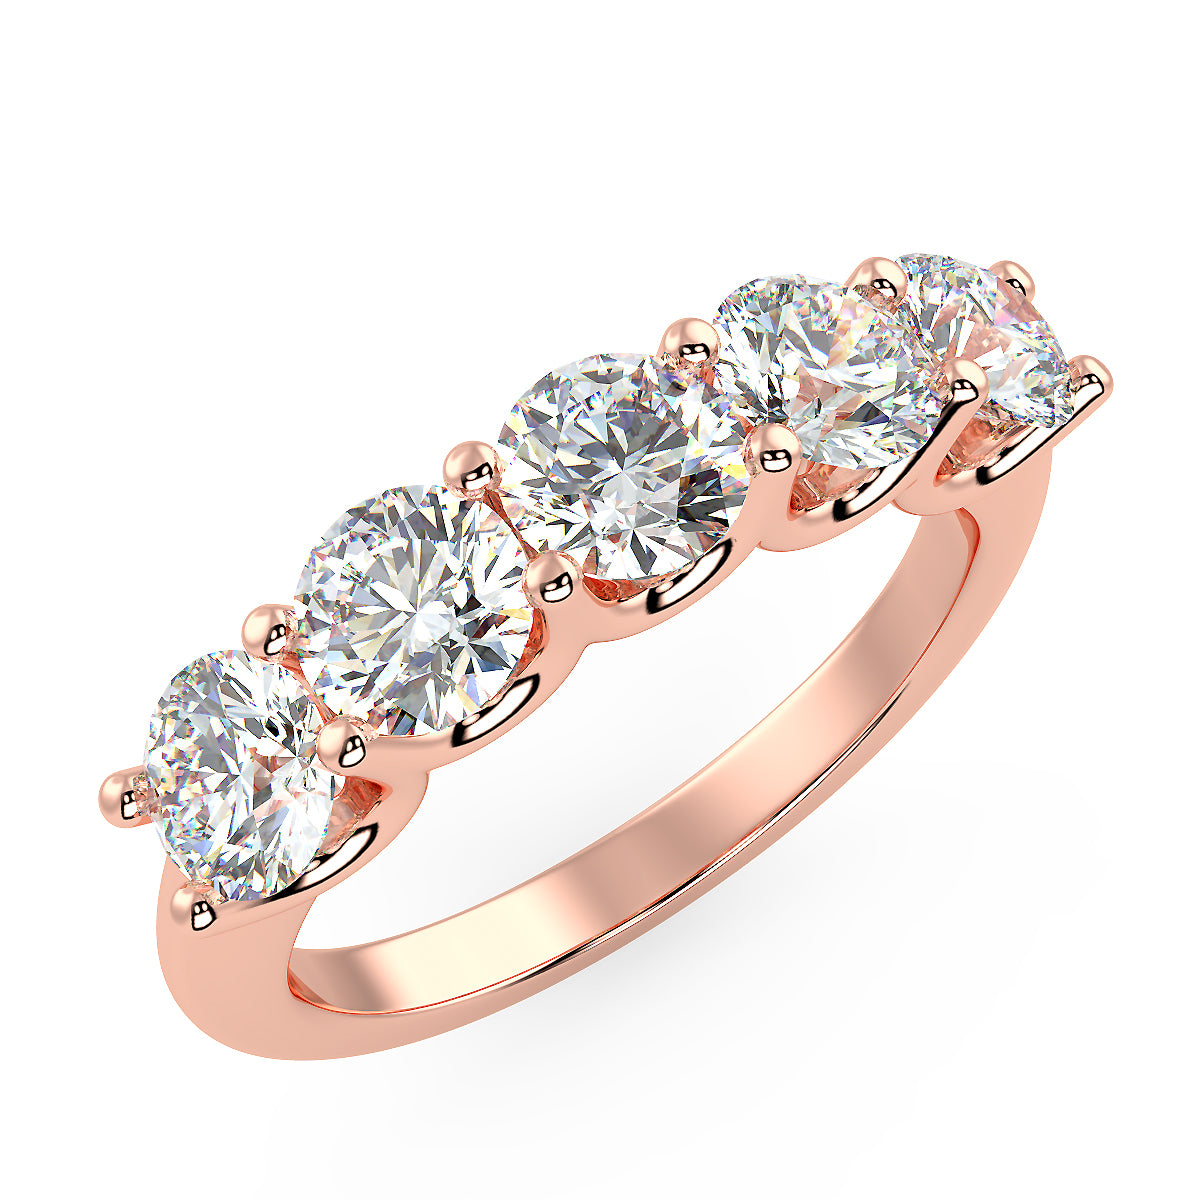 Asteroid Band in Rose Gold (1.80 Ct. Tw.)